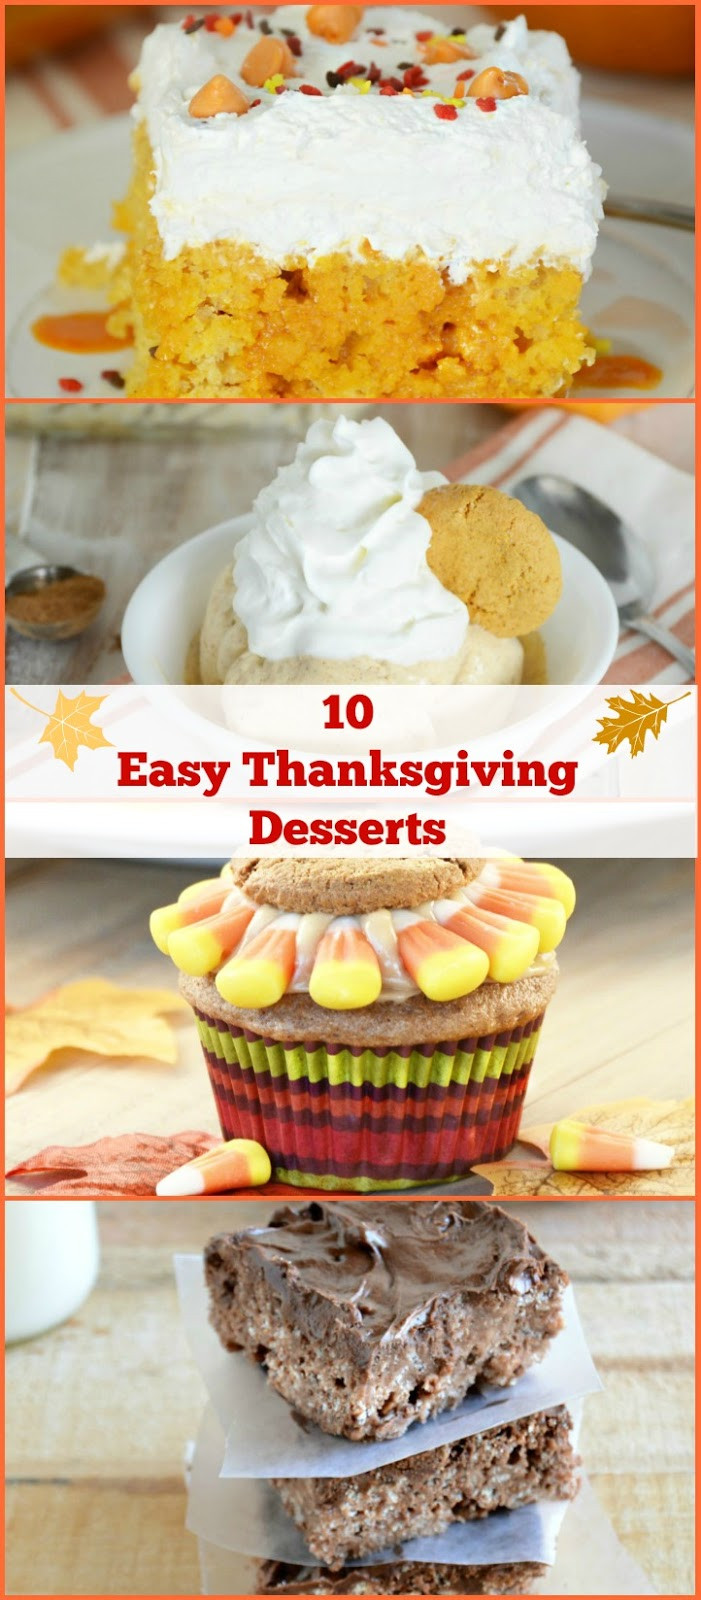 Easy Desserts For Thanksgiving  10 Easy Thanksgiving Dessert Ideas Meatloaf and Melodrama